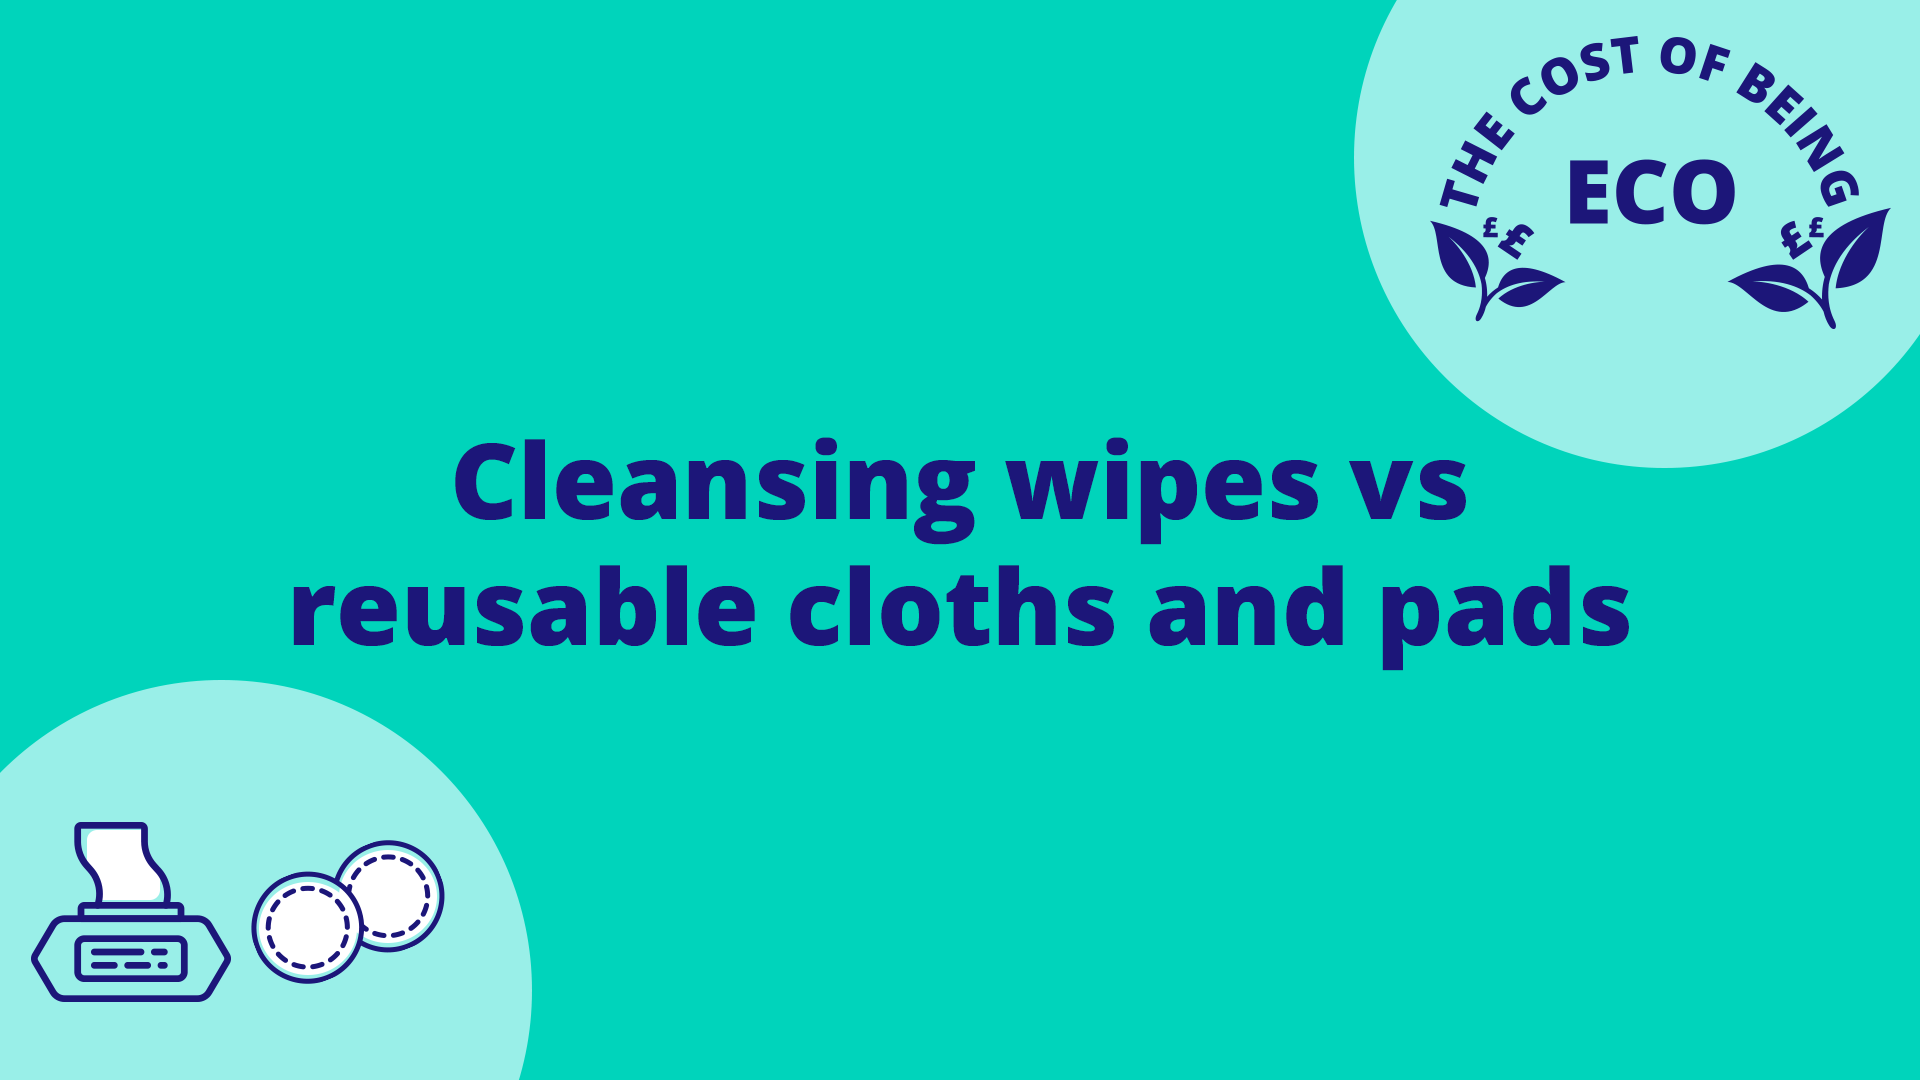 the-cost-of-being-eco-reusable-wipes